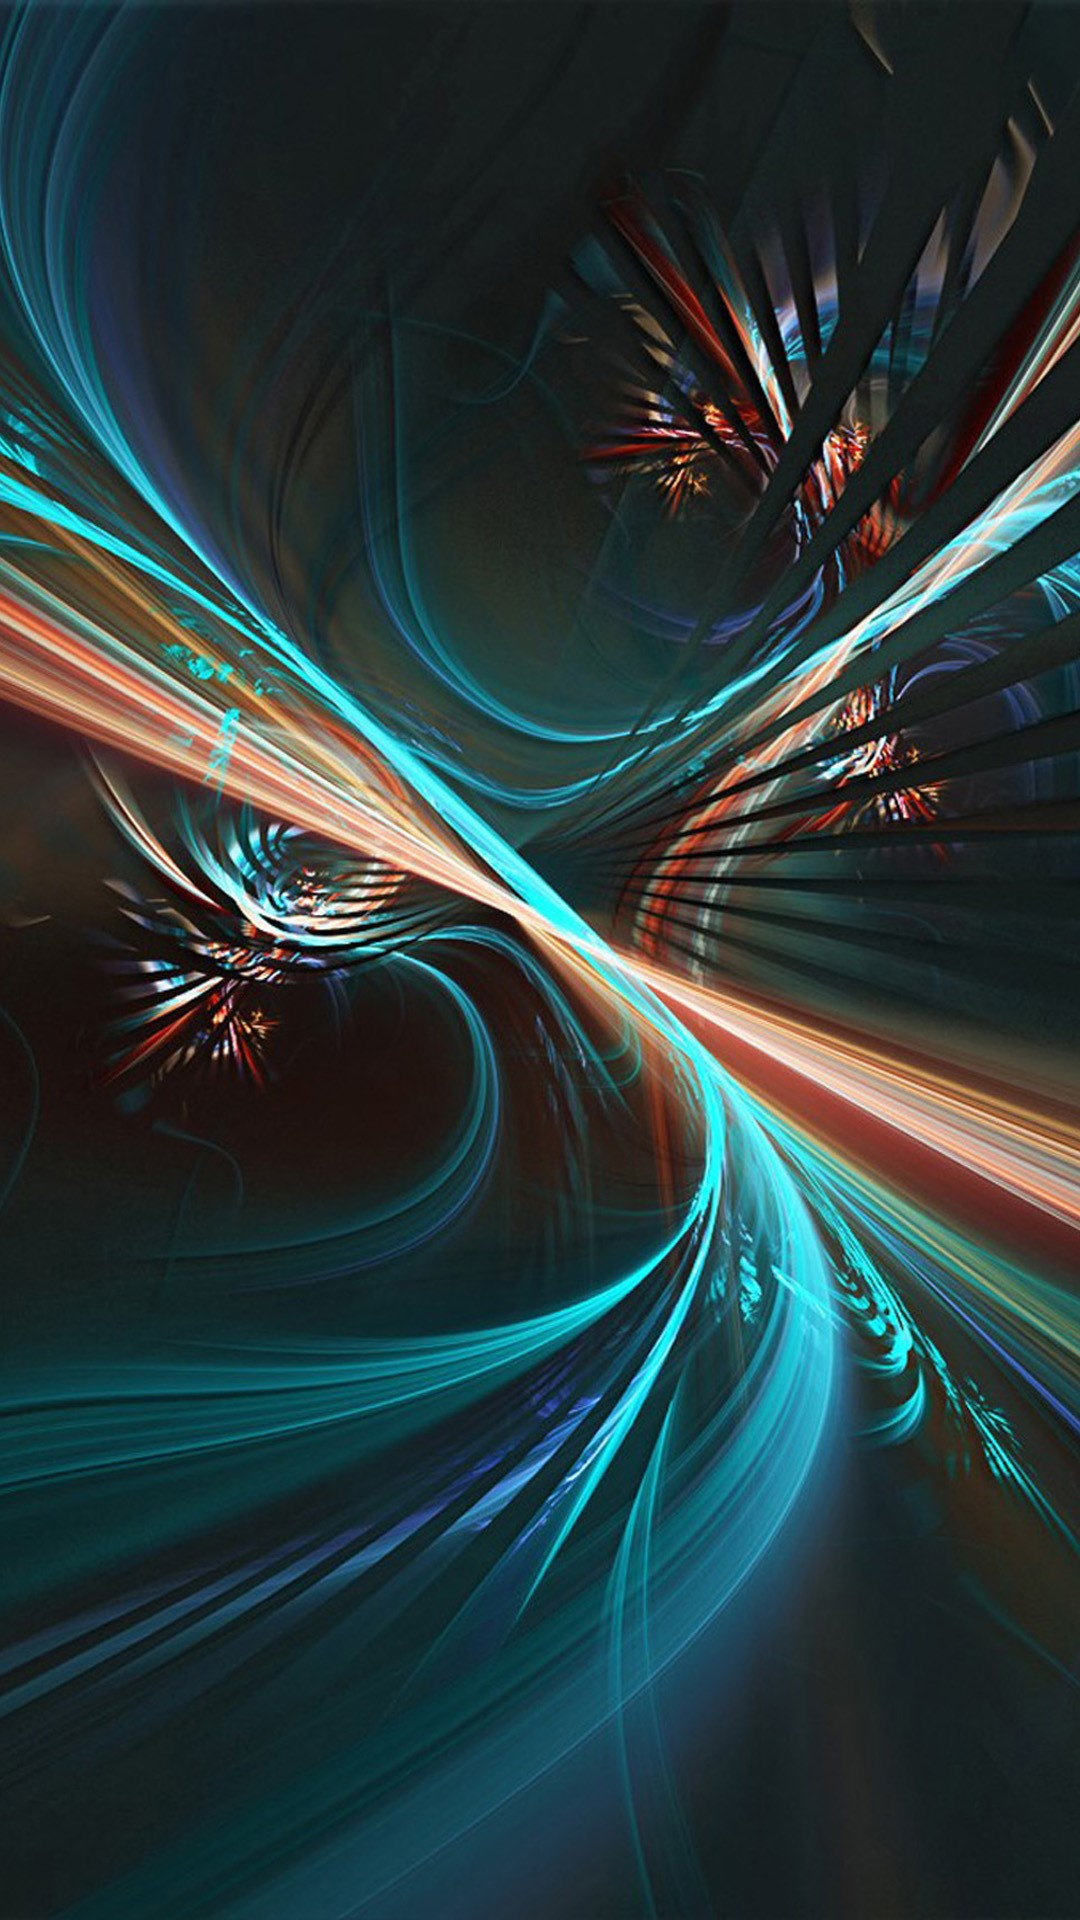 Abstract Phone Backgrounds Download Pixelstalknet